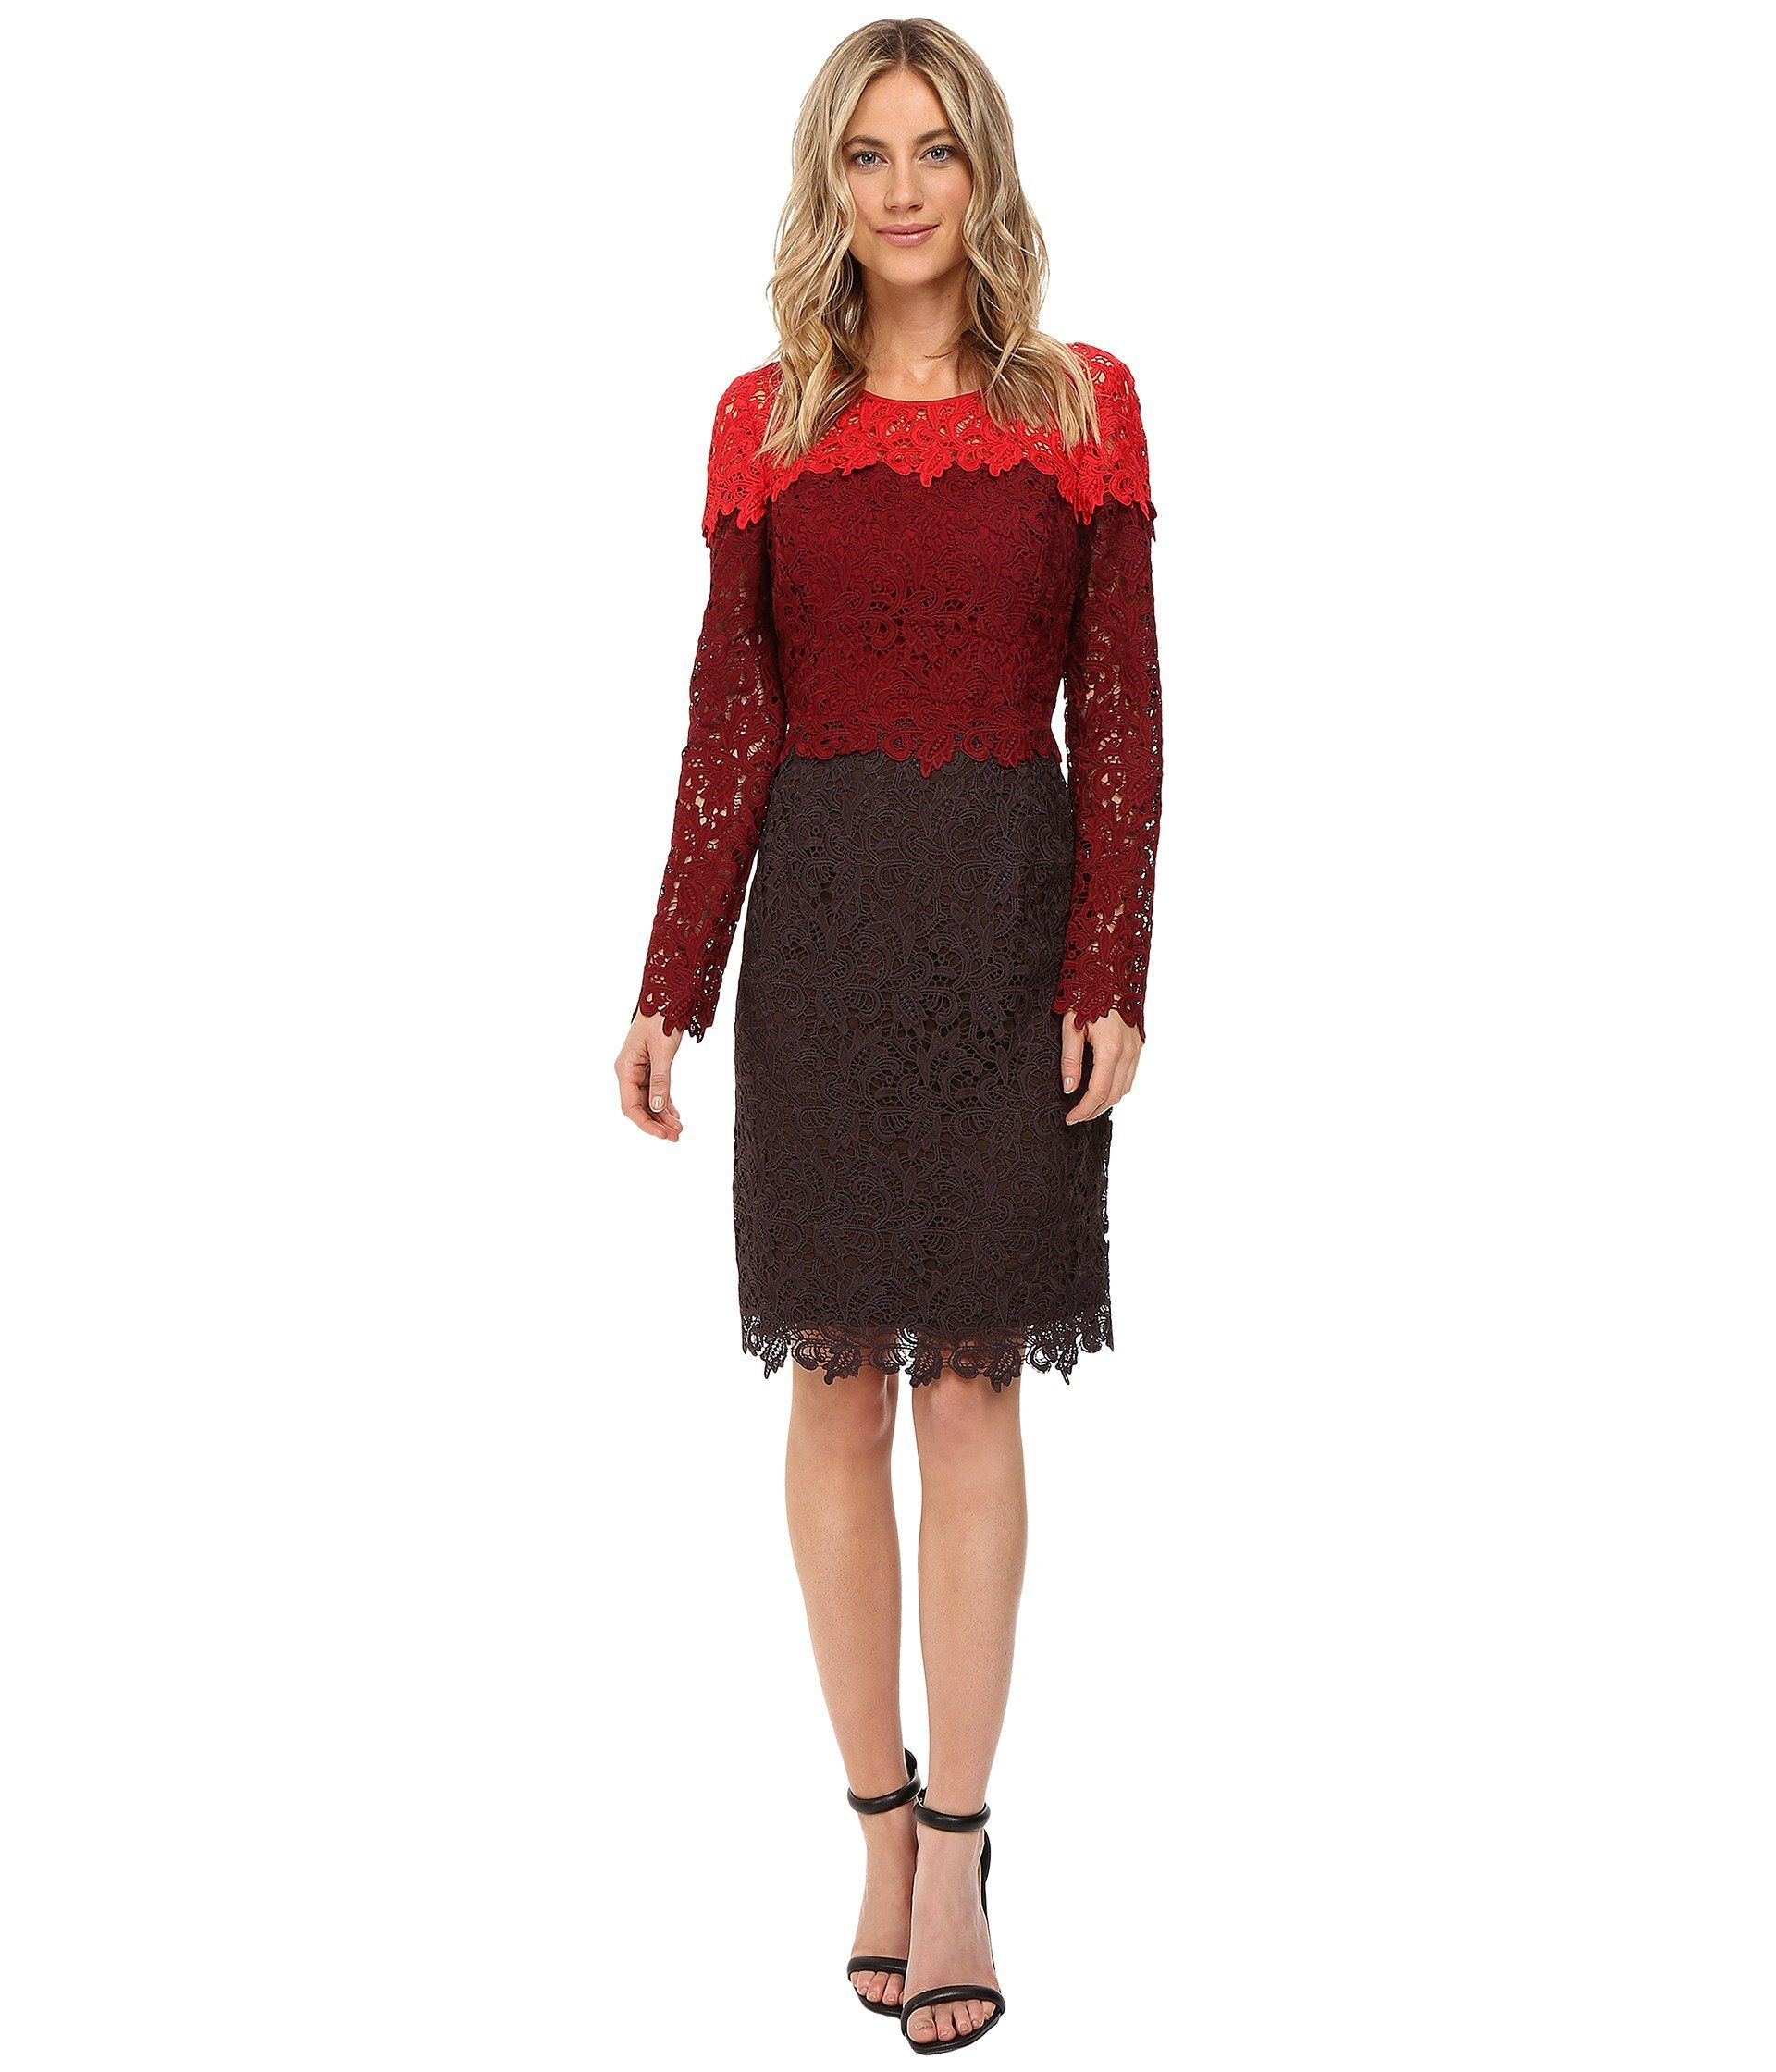 Nue by shani womenus tricolor lace dress redwinechocolate dress a